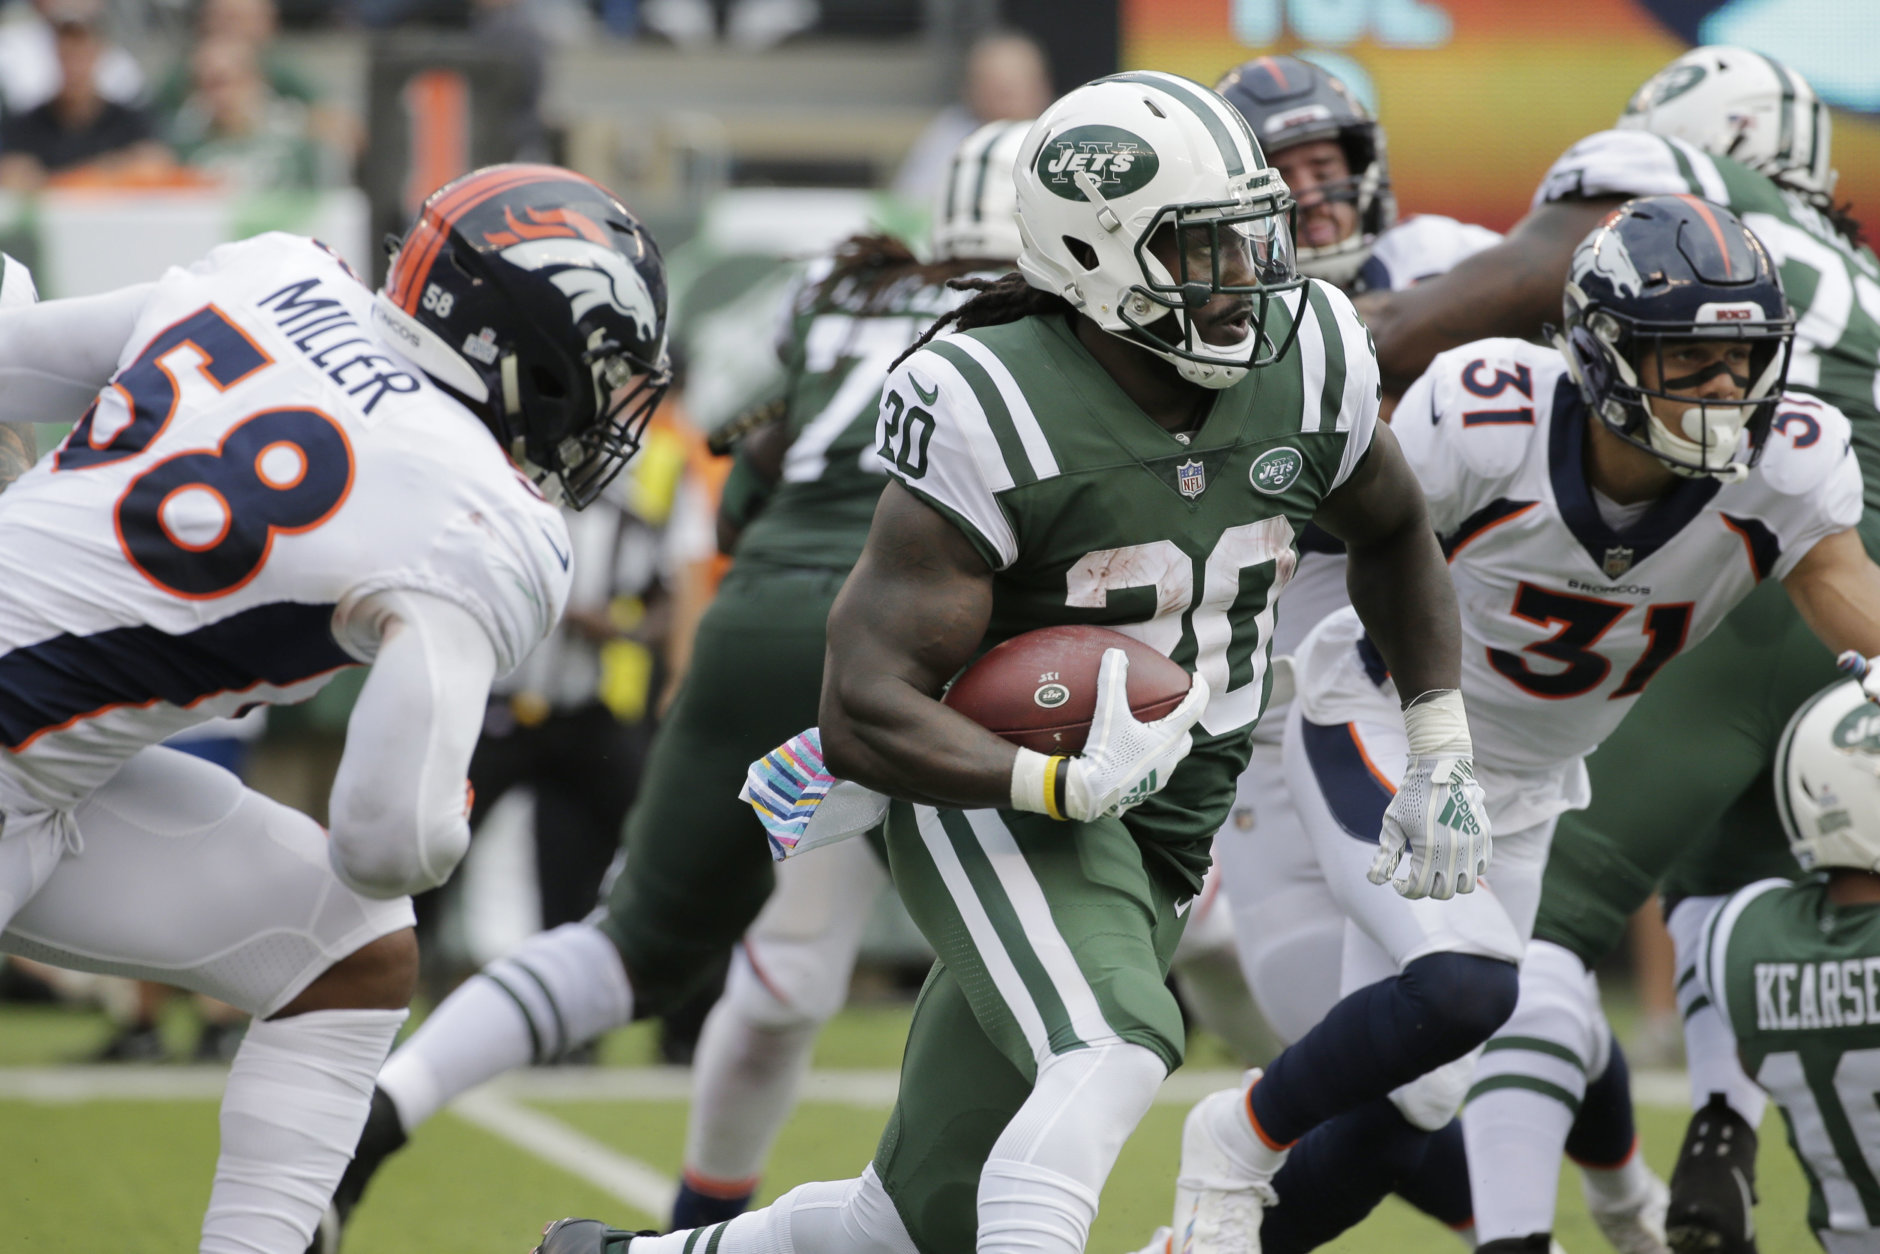 New York Jets' Isaiah Crowell (20) rushes past Denver Broncos' Von Miller (58) during the first half of an NFL football game Sunday, Oct. 7, 2018, in East Rutherford, N.J. (AP Photo/Seth Wenig)